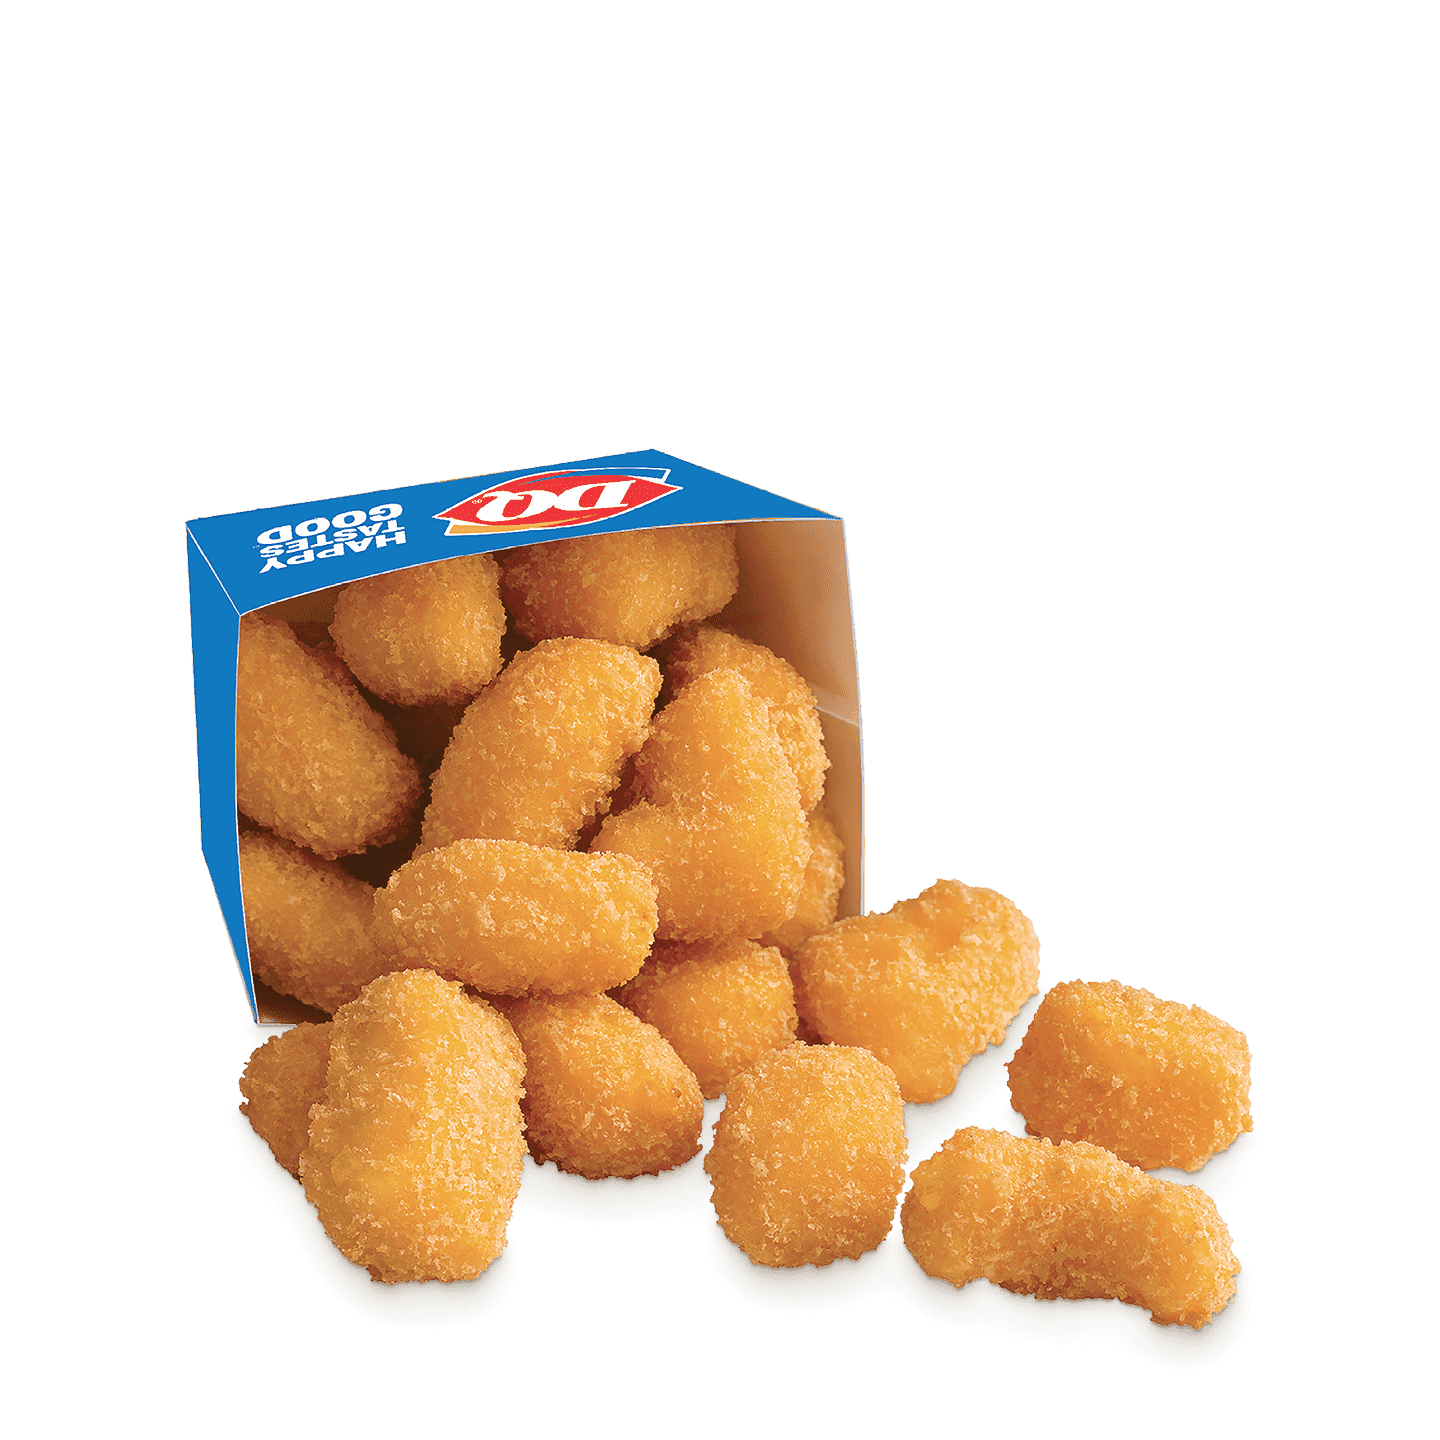 A box of deep-fried cheese curds.